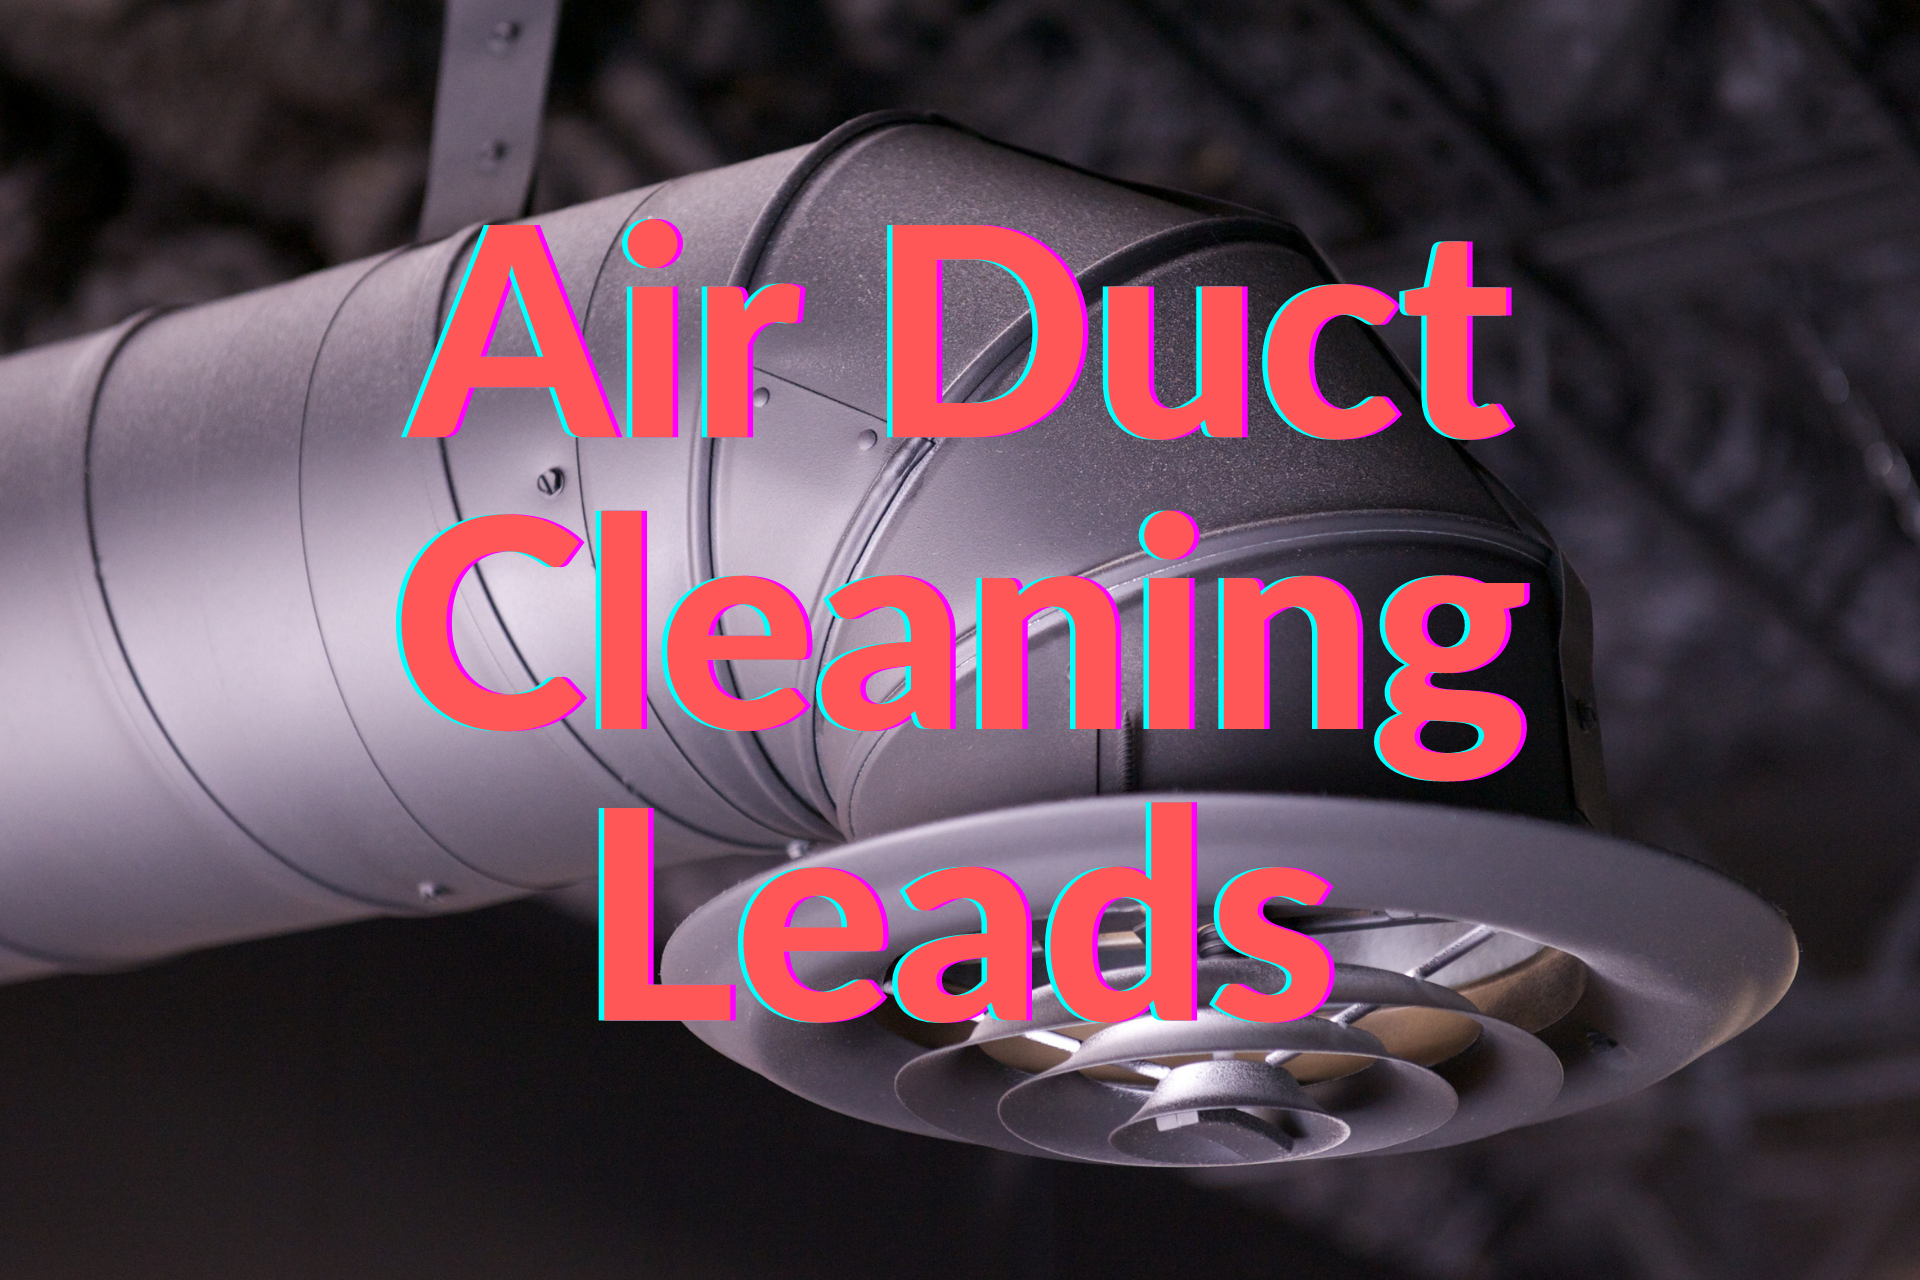 Air duct cleaning leads